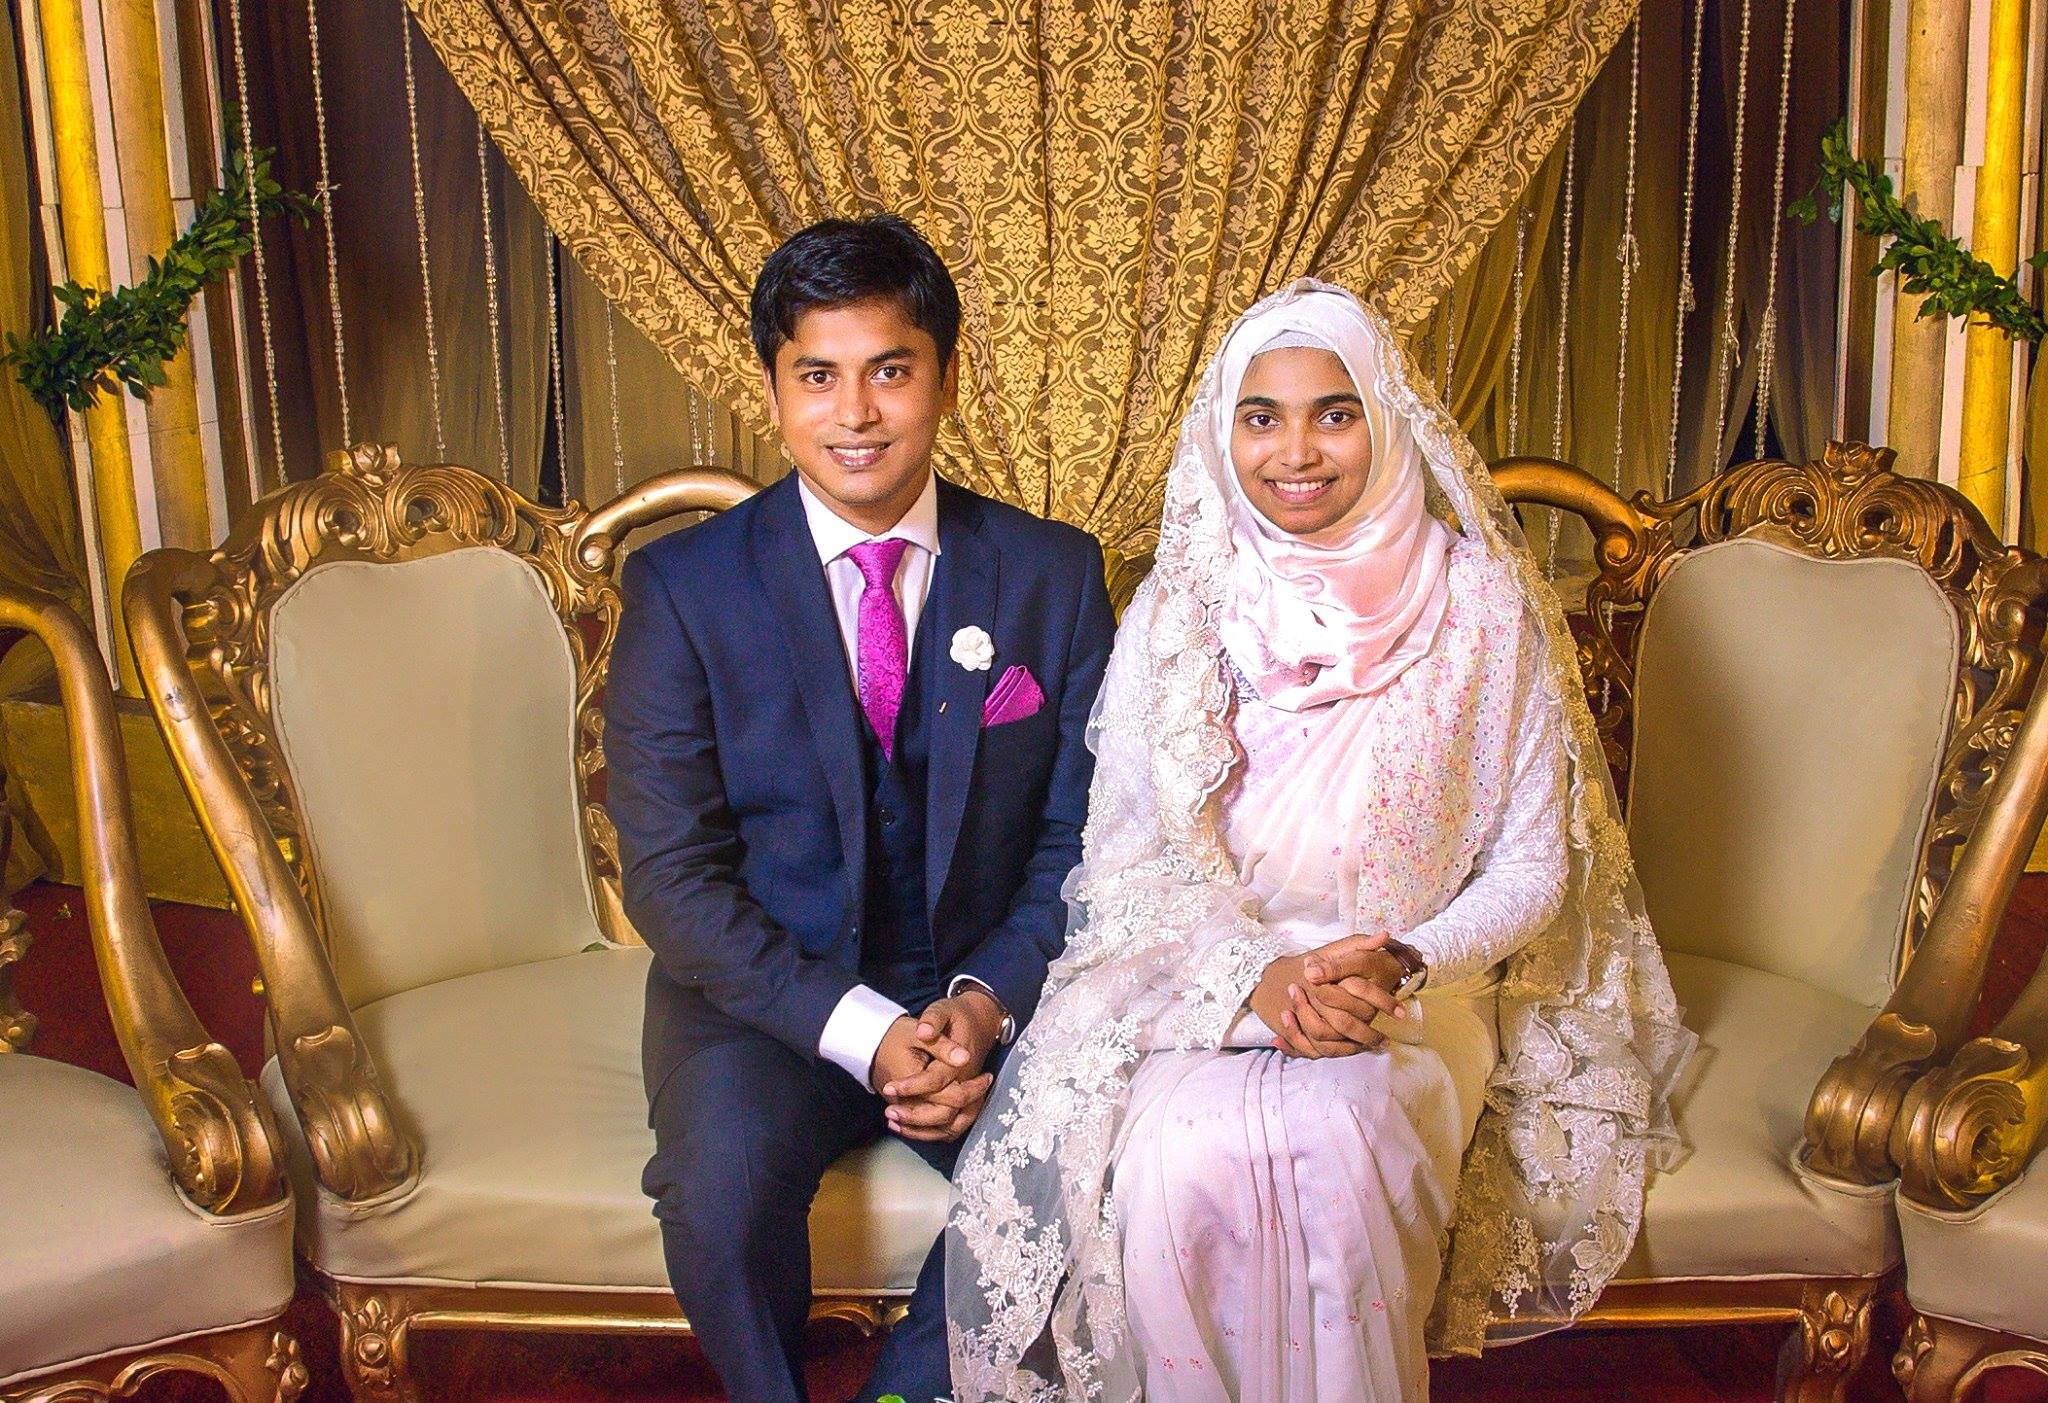 thasnim jara simple marriage without makeup costly dress